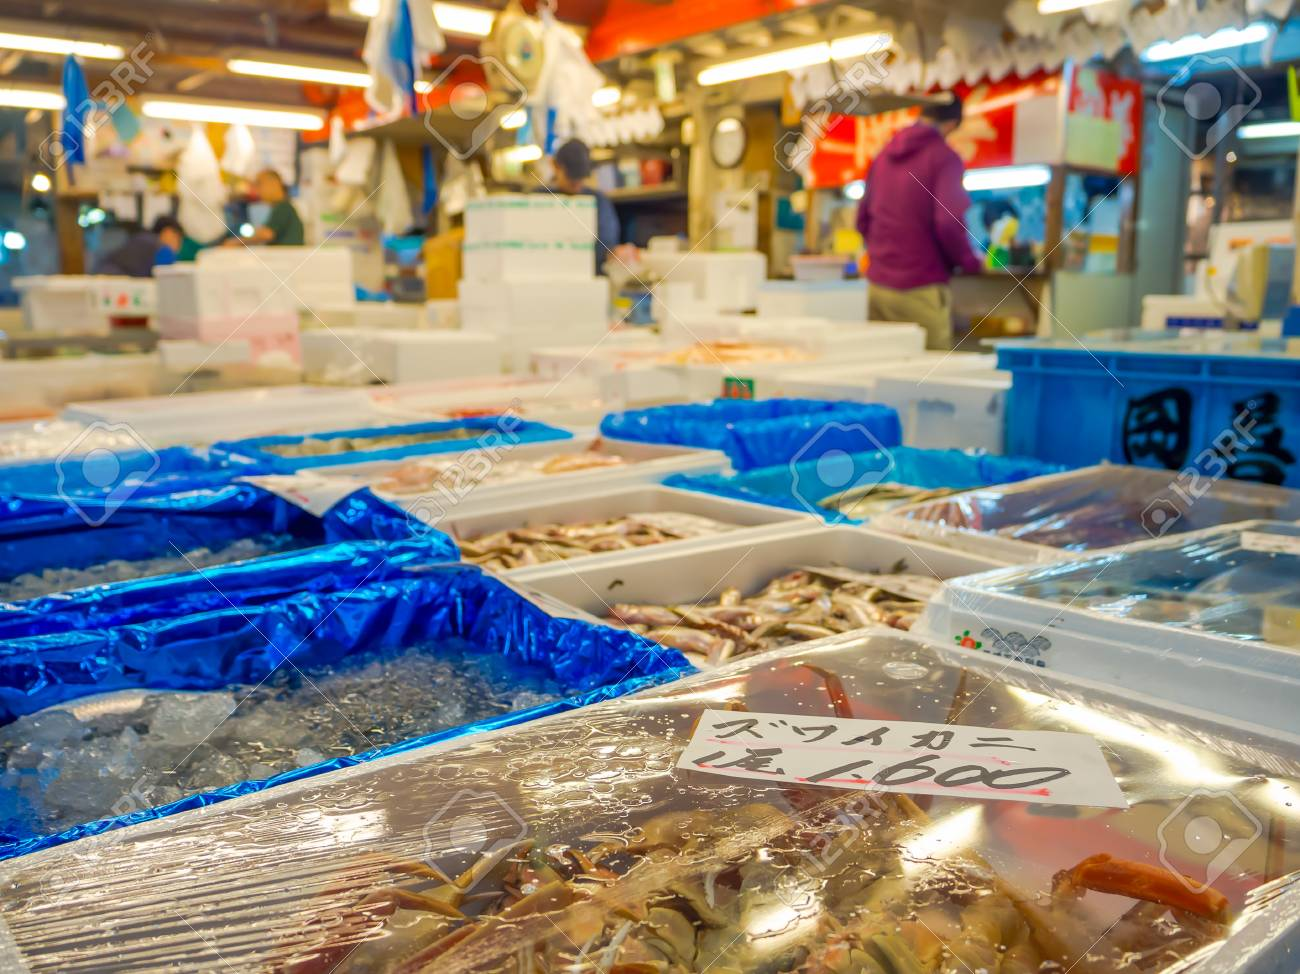 TOKYO, JAPAN JUNE 28 - 2017: Seafood for sale at the Fish Market